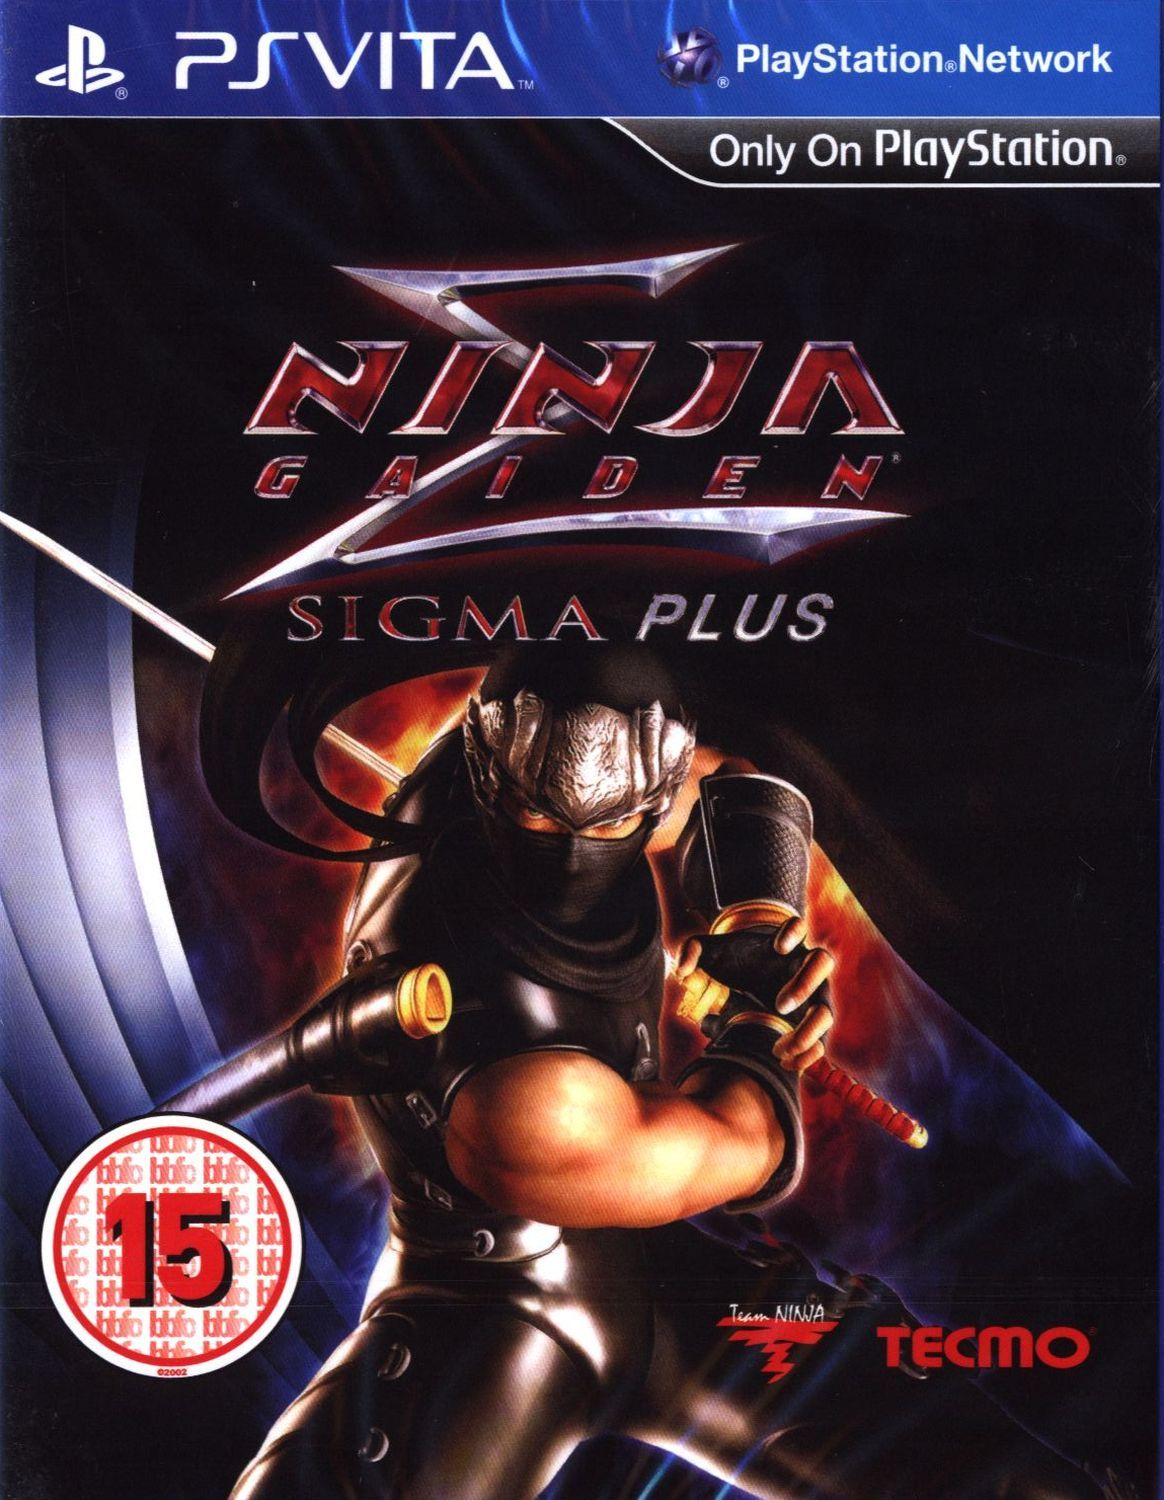 Ninja Gaiden Sigma Plus (PS Vita) - 1